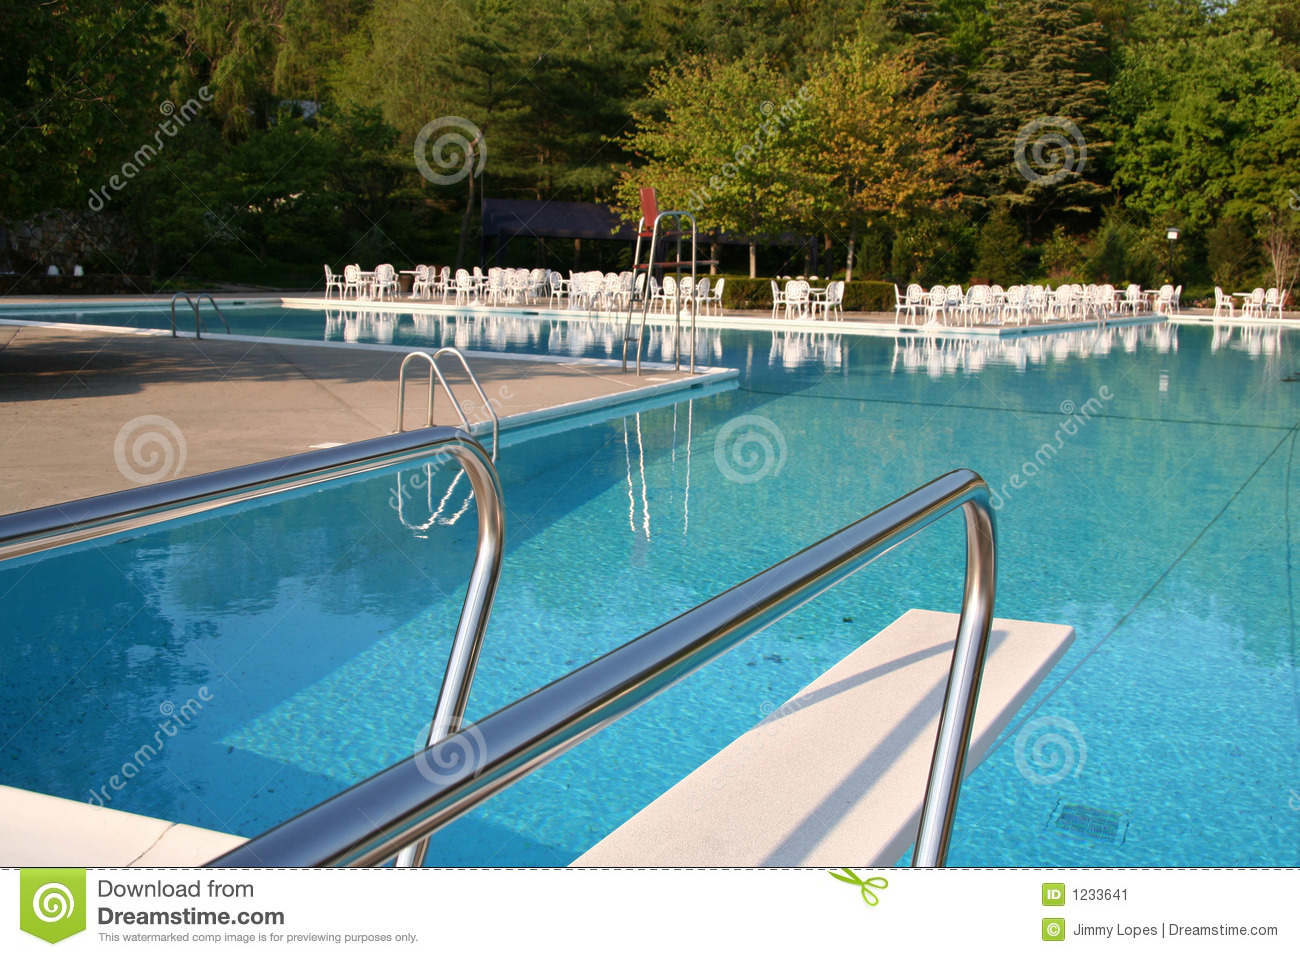 Pool With Diving Board Stock Image Image 1233641